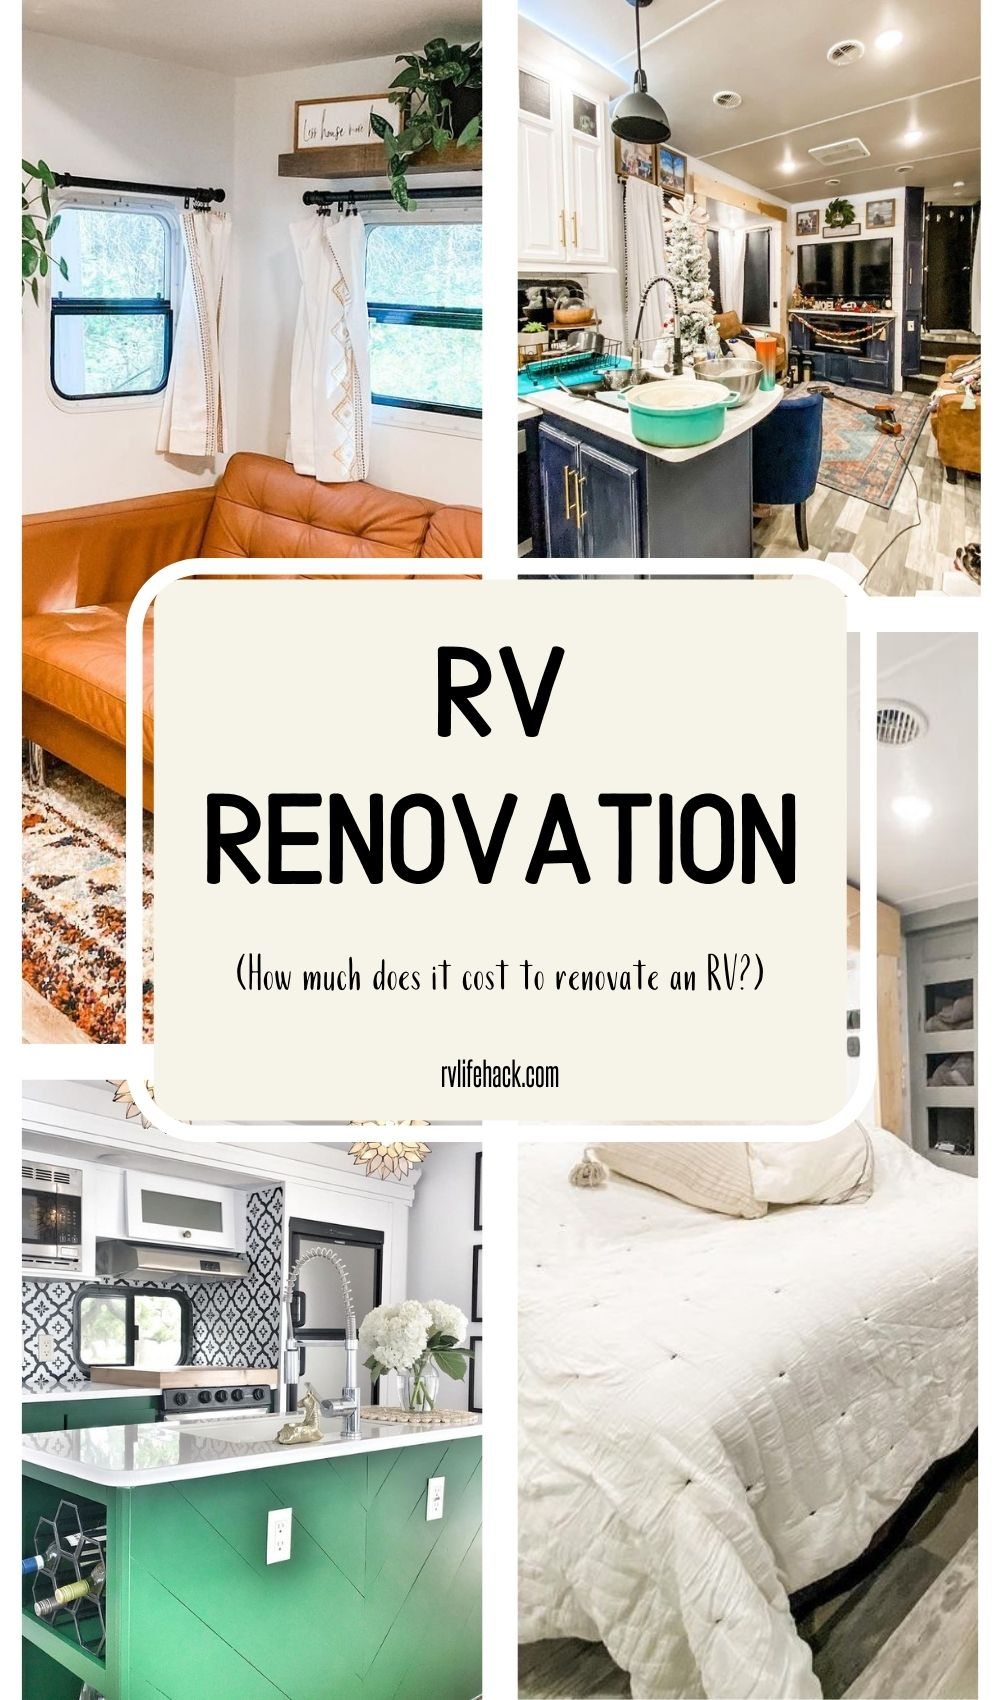 RV Renovation (How much does it cost to renovate an RV?)